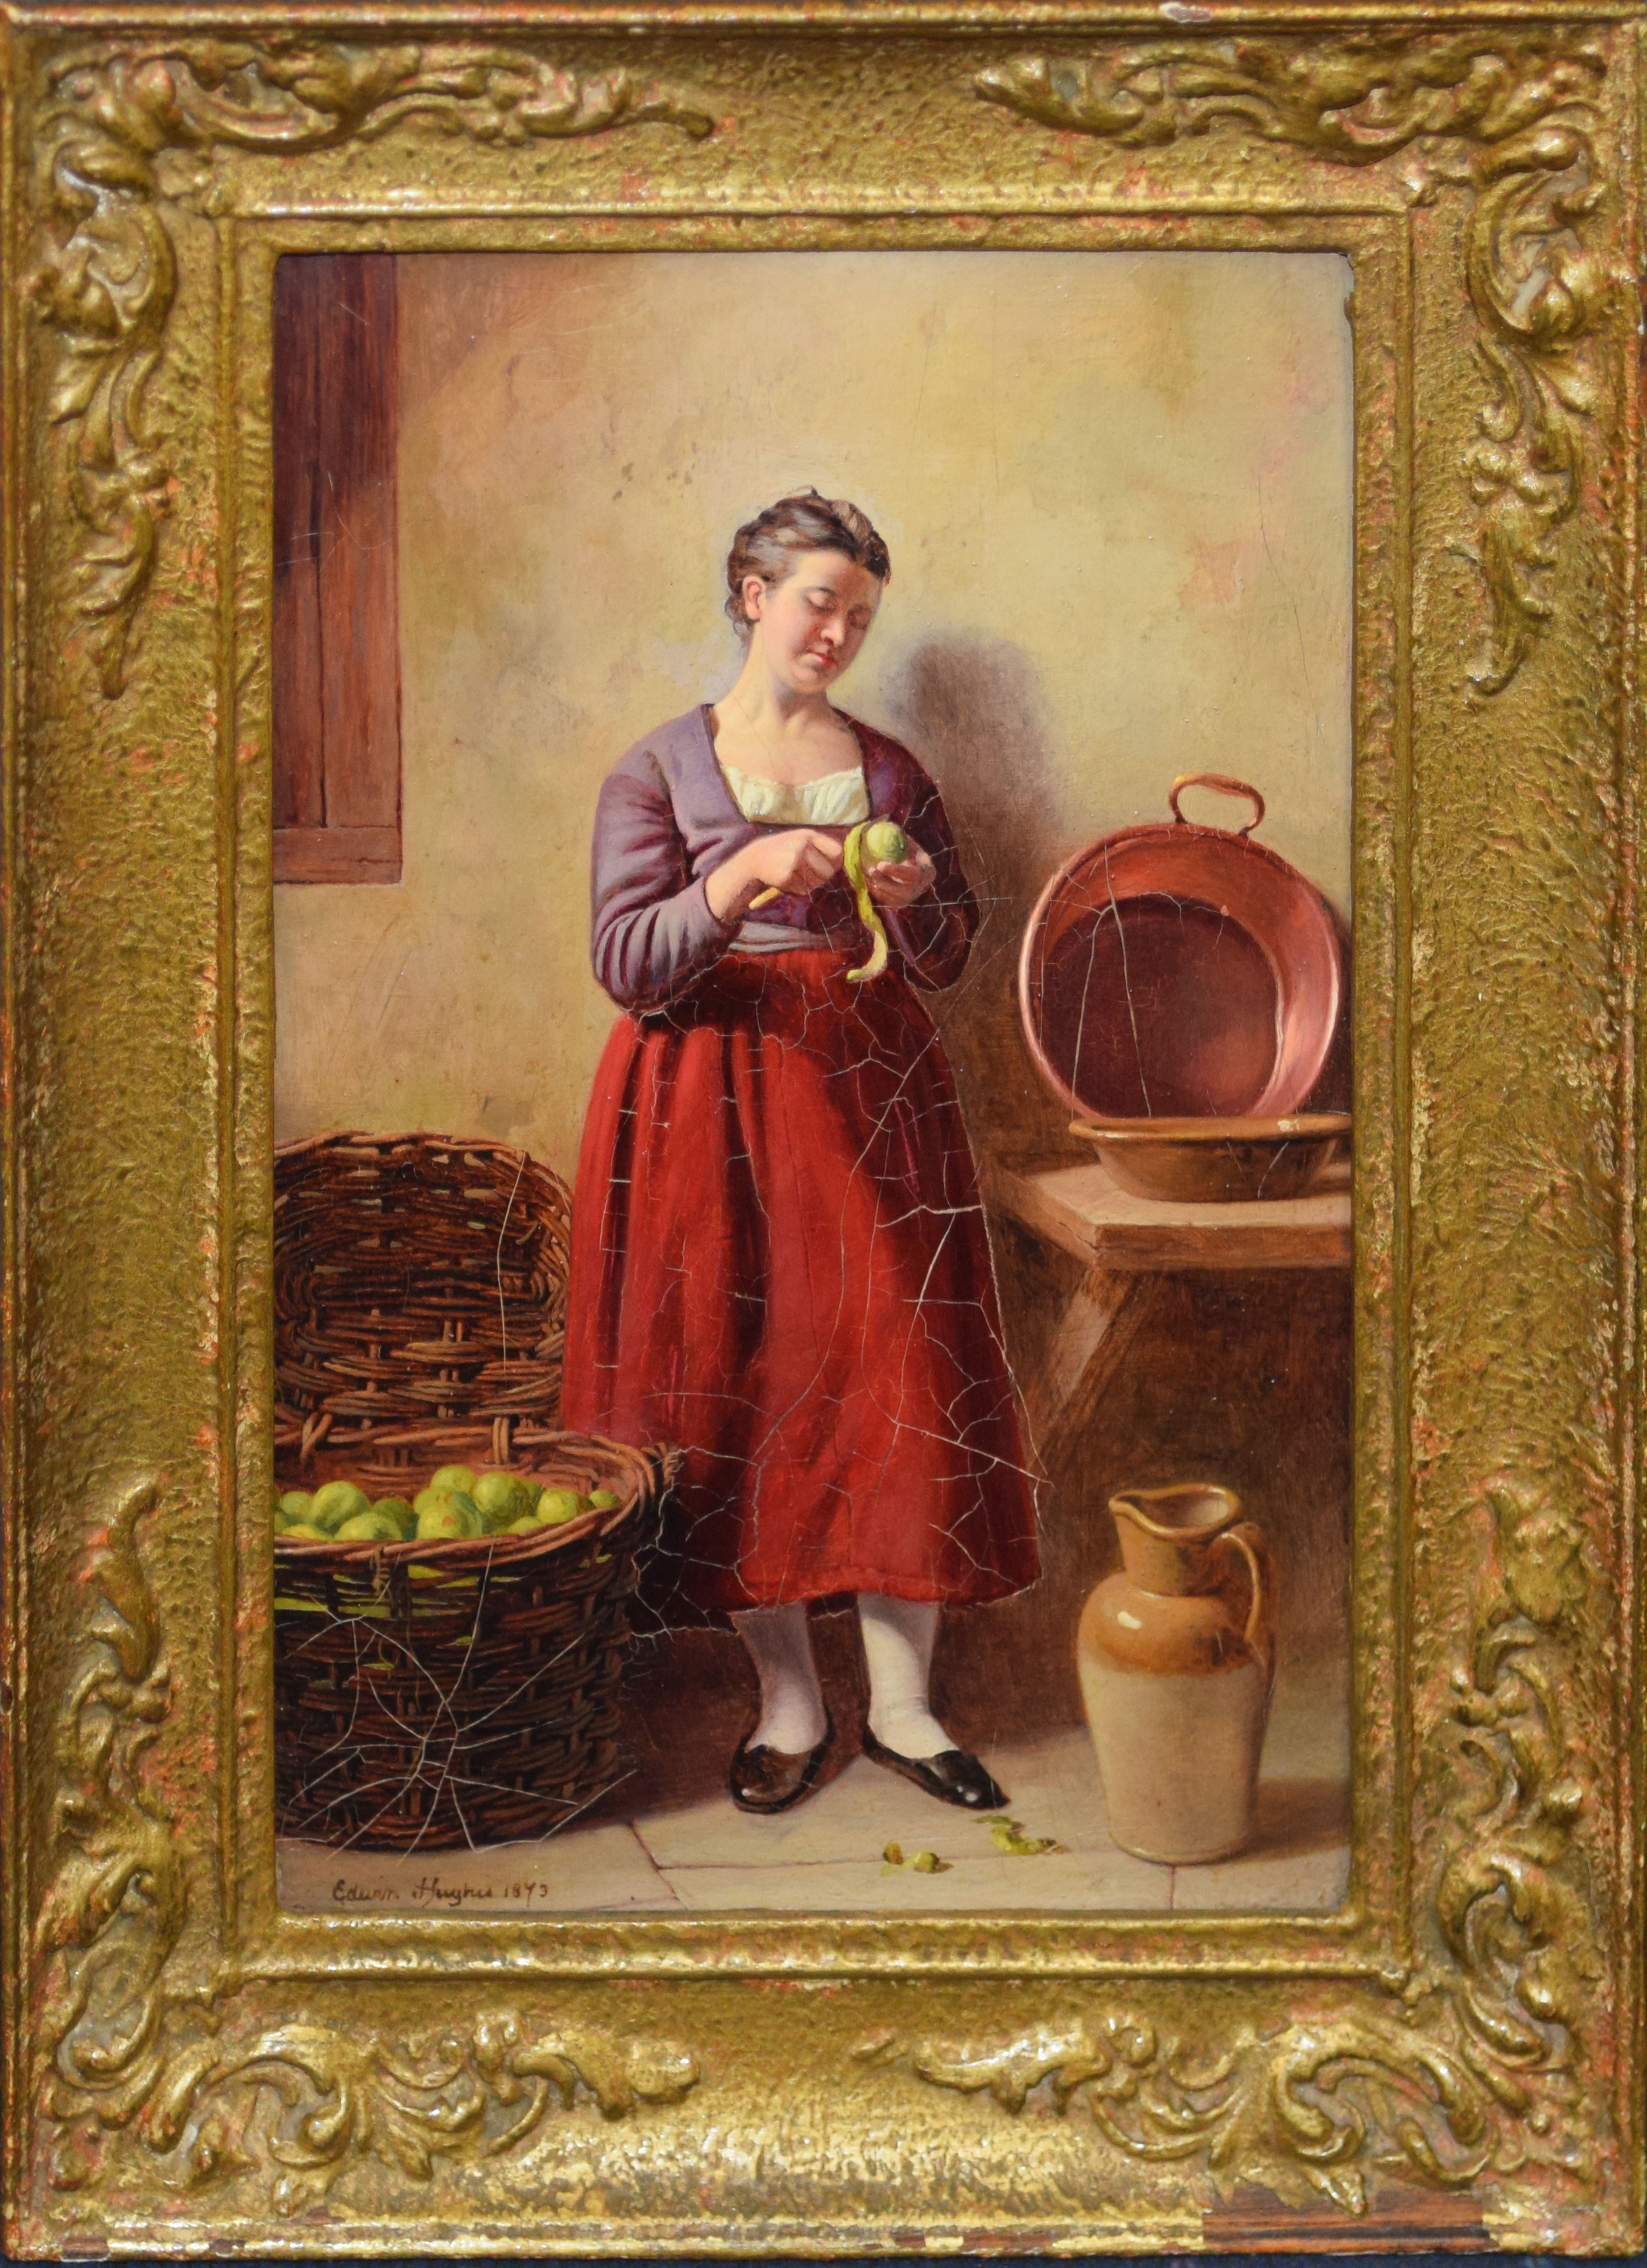 Edwin Hughes, Interior Scene with Lady peeling Apples, oil on board, signed and dated 1873 lower